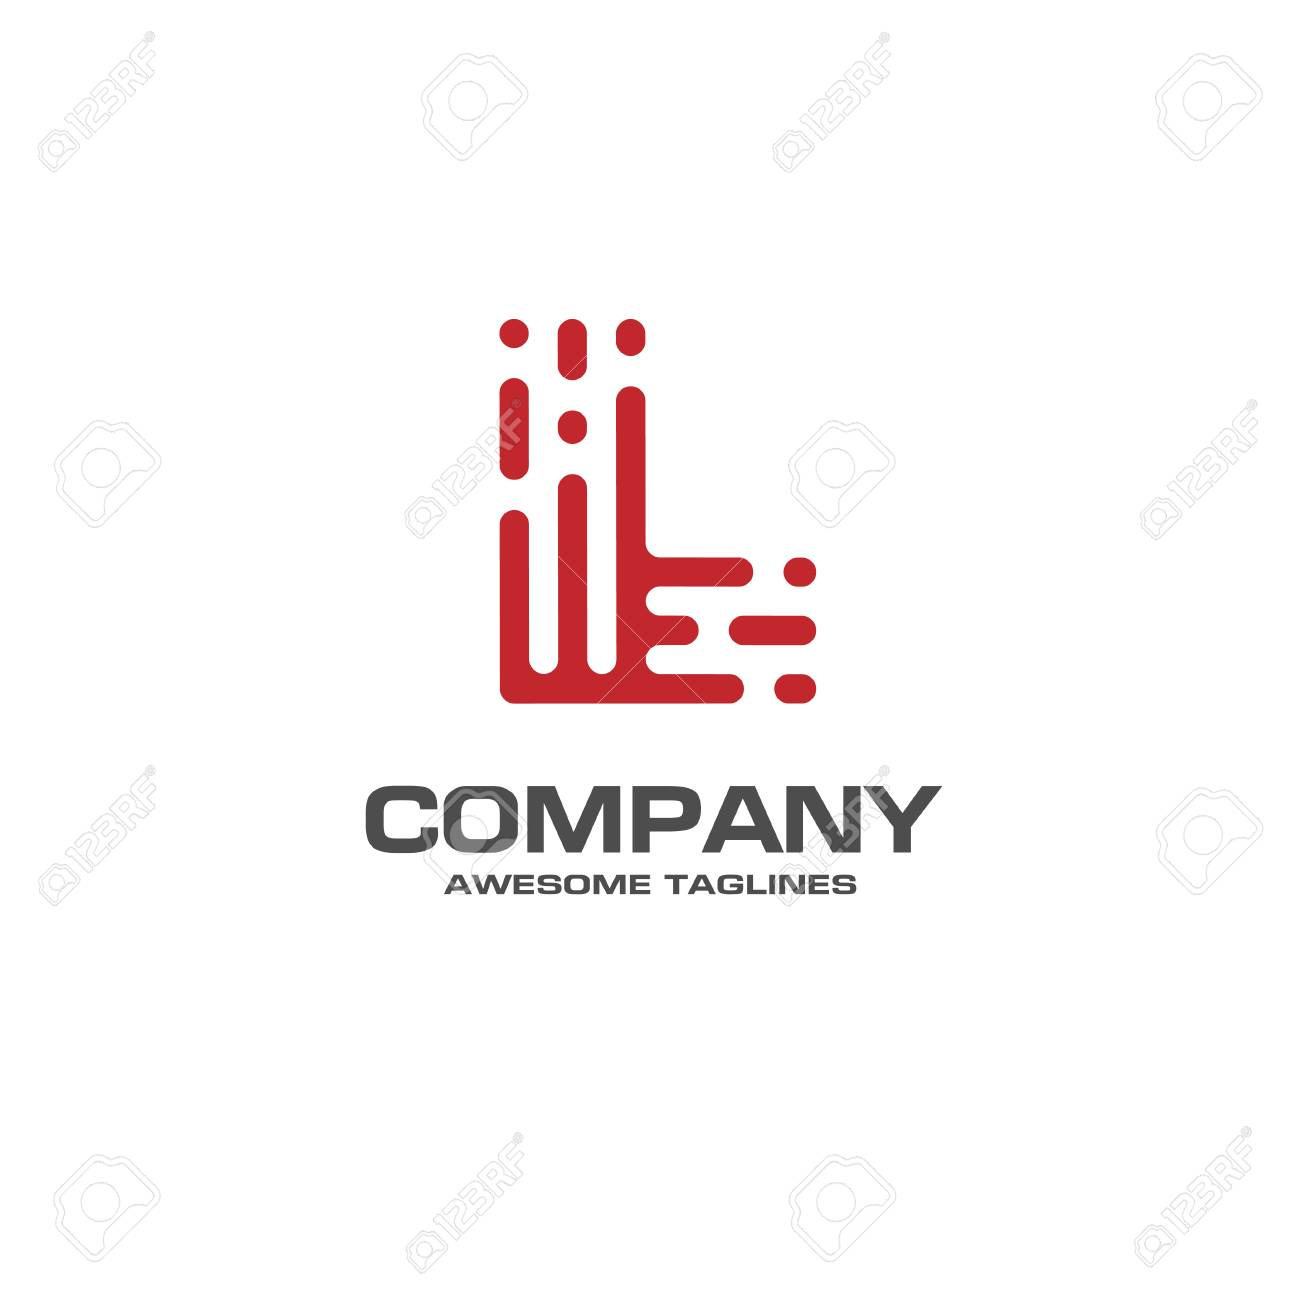 Creative Letter L Line Design Template Linear Best Royalty Free Cliparts Vectors And Stock Illustration Image 71162399